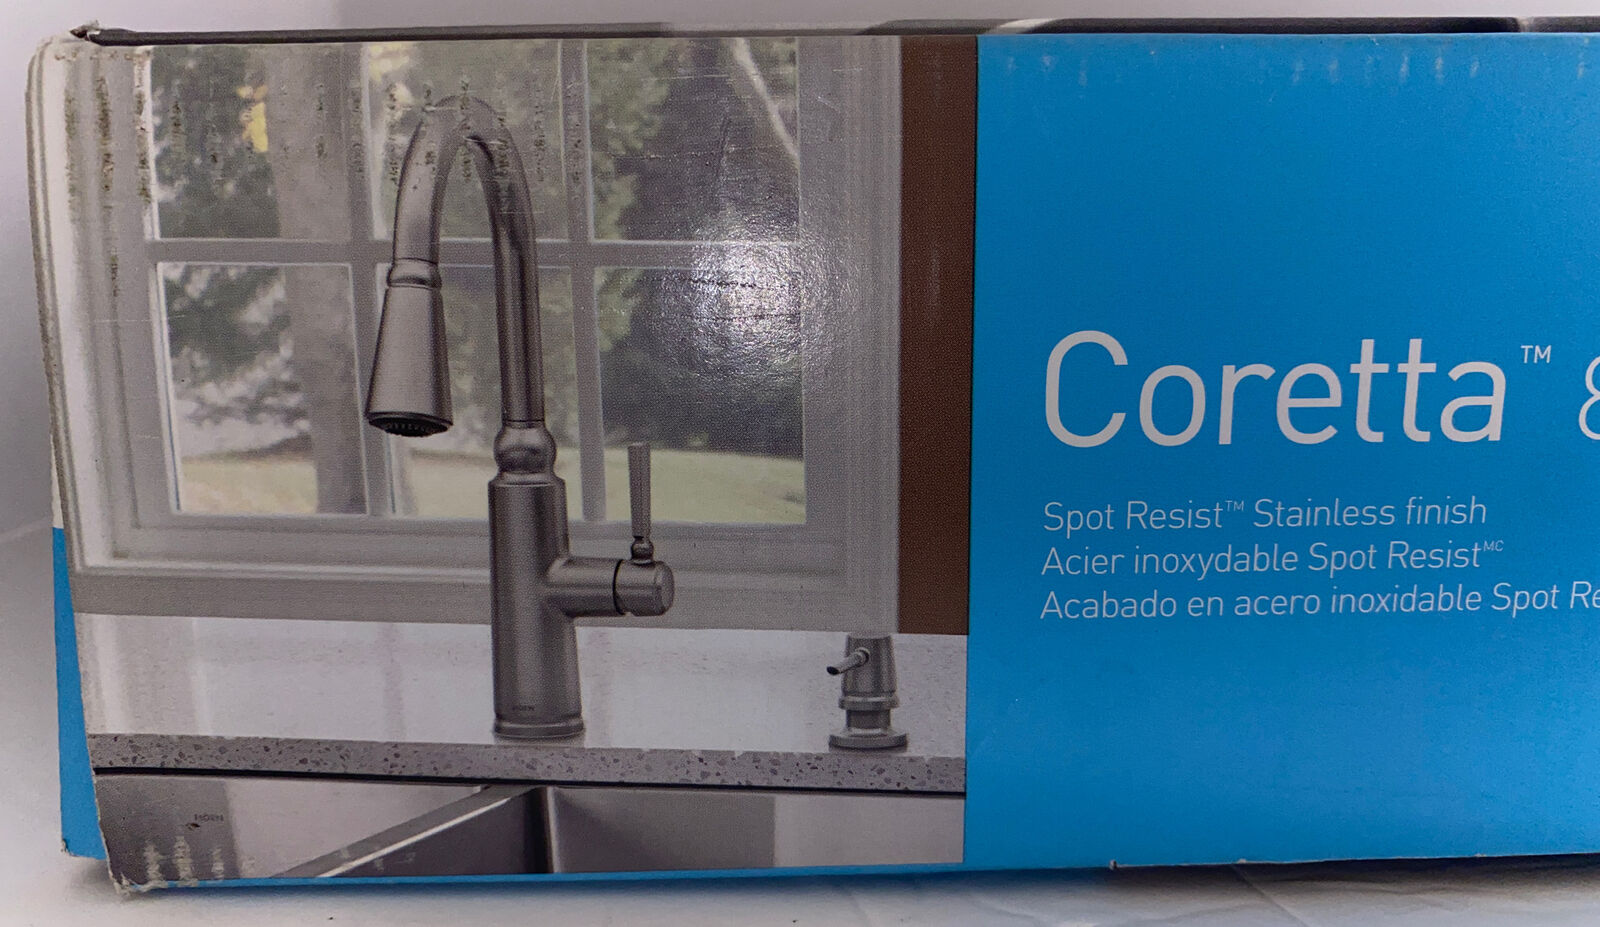 Moen Coretta Pull-Down Sprayer Kitchen Faucet in Spot Resist Stainless